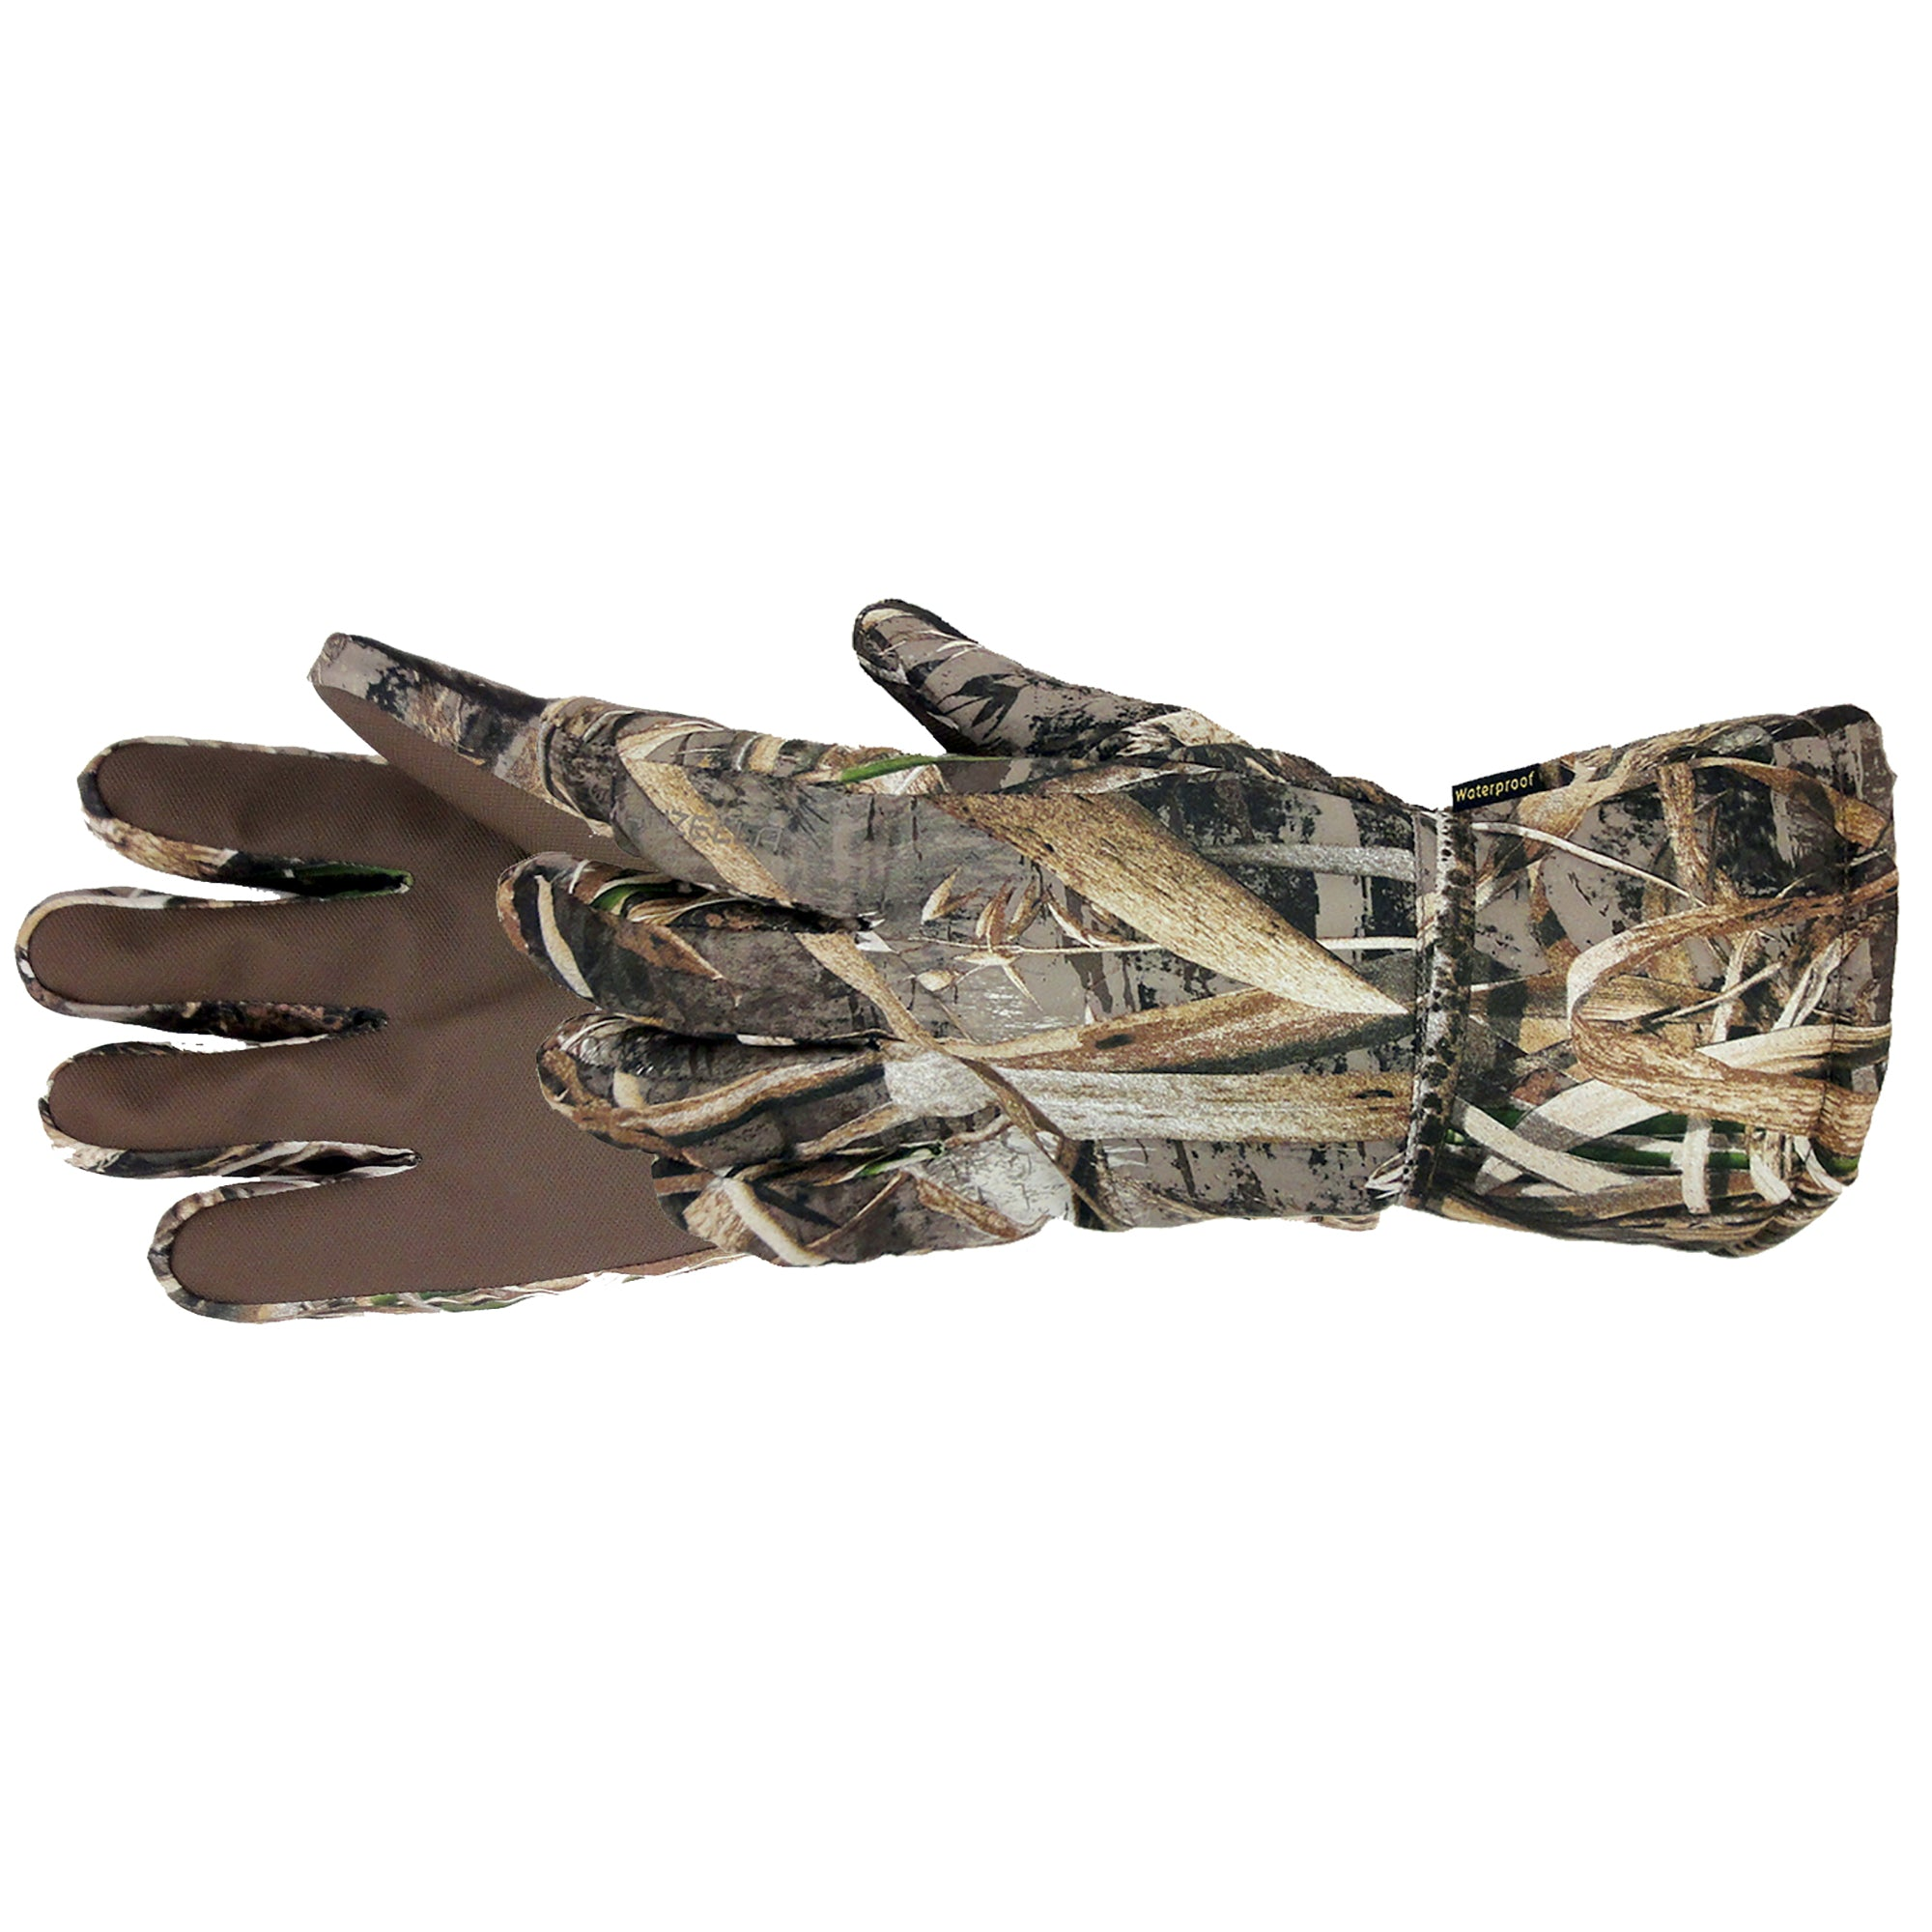 Manzella MARSHLAND Hunting Gloves for Men